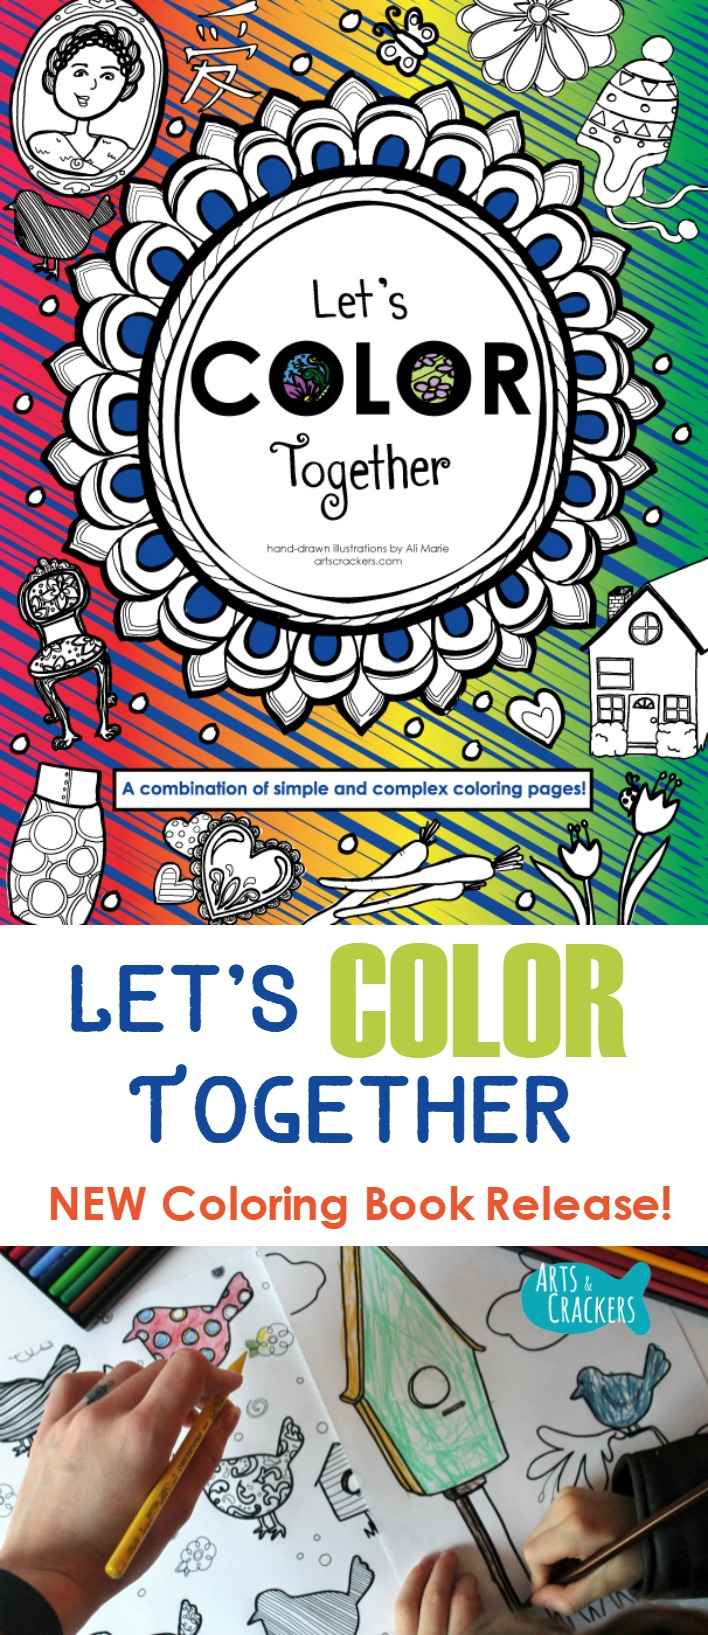 let s color together new coloring book release update